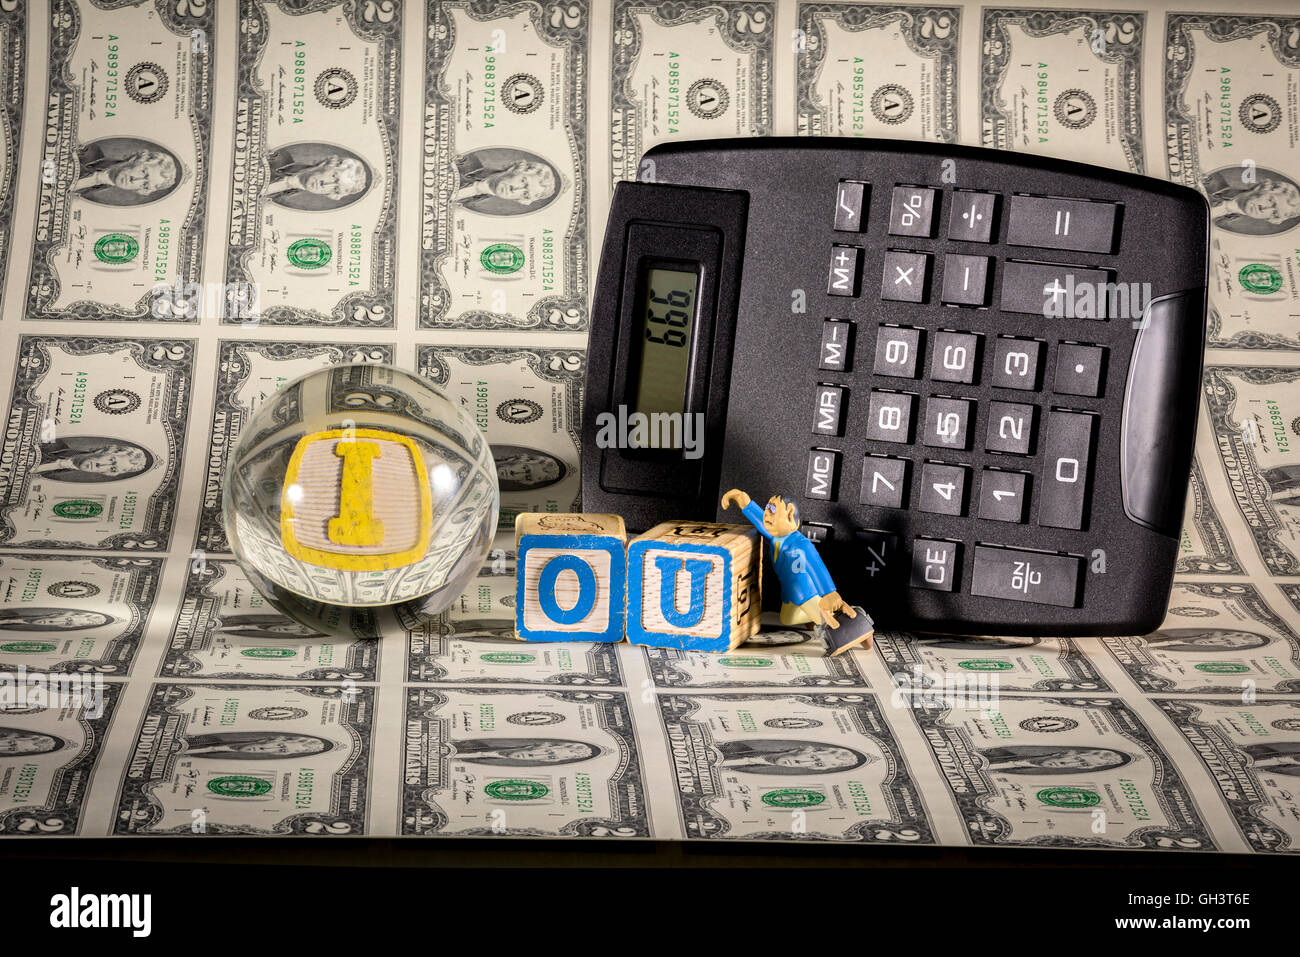 Calculator Words Stock Photos Images Alamy Circuitry Of An Electronic Royalty Free Photography Devil Number On And The Iou Image